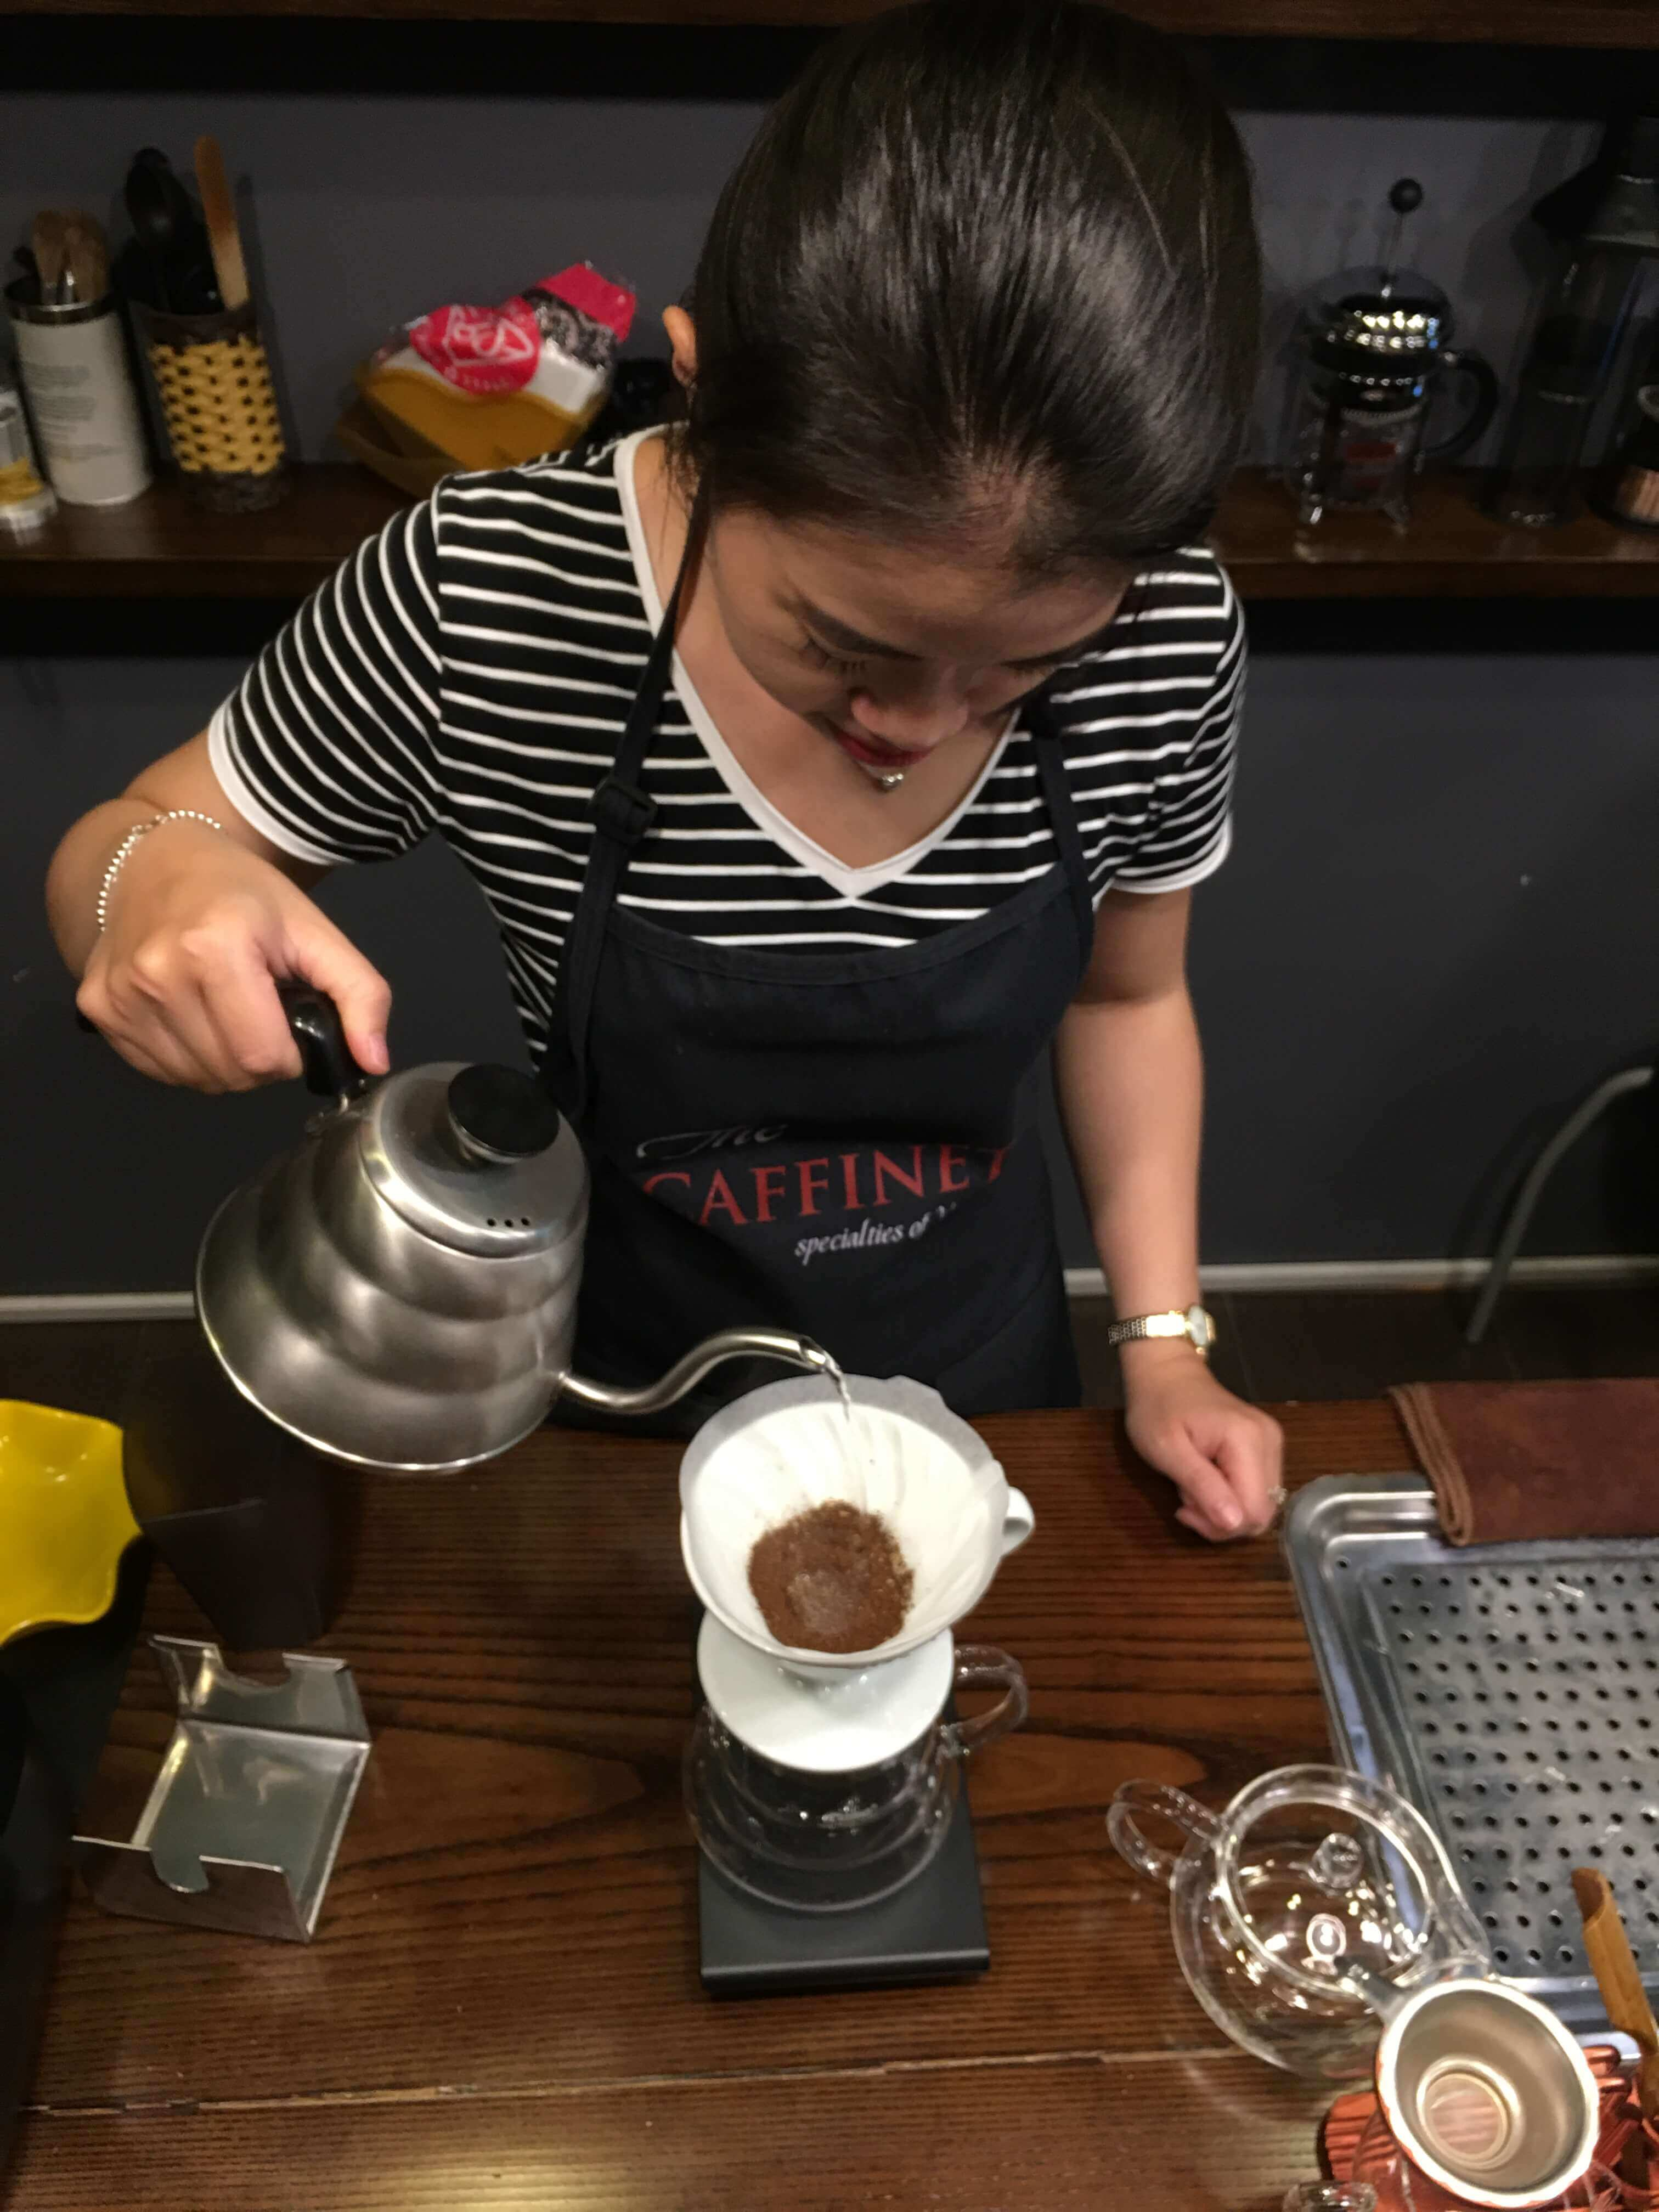 The Caffinet Pour over